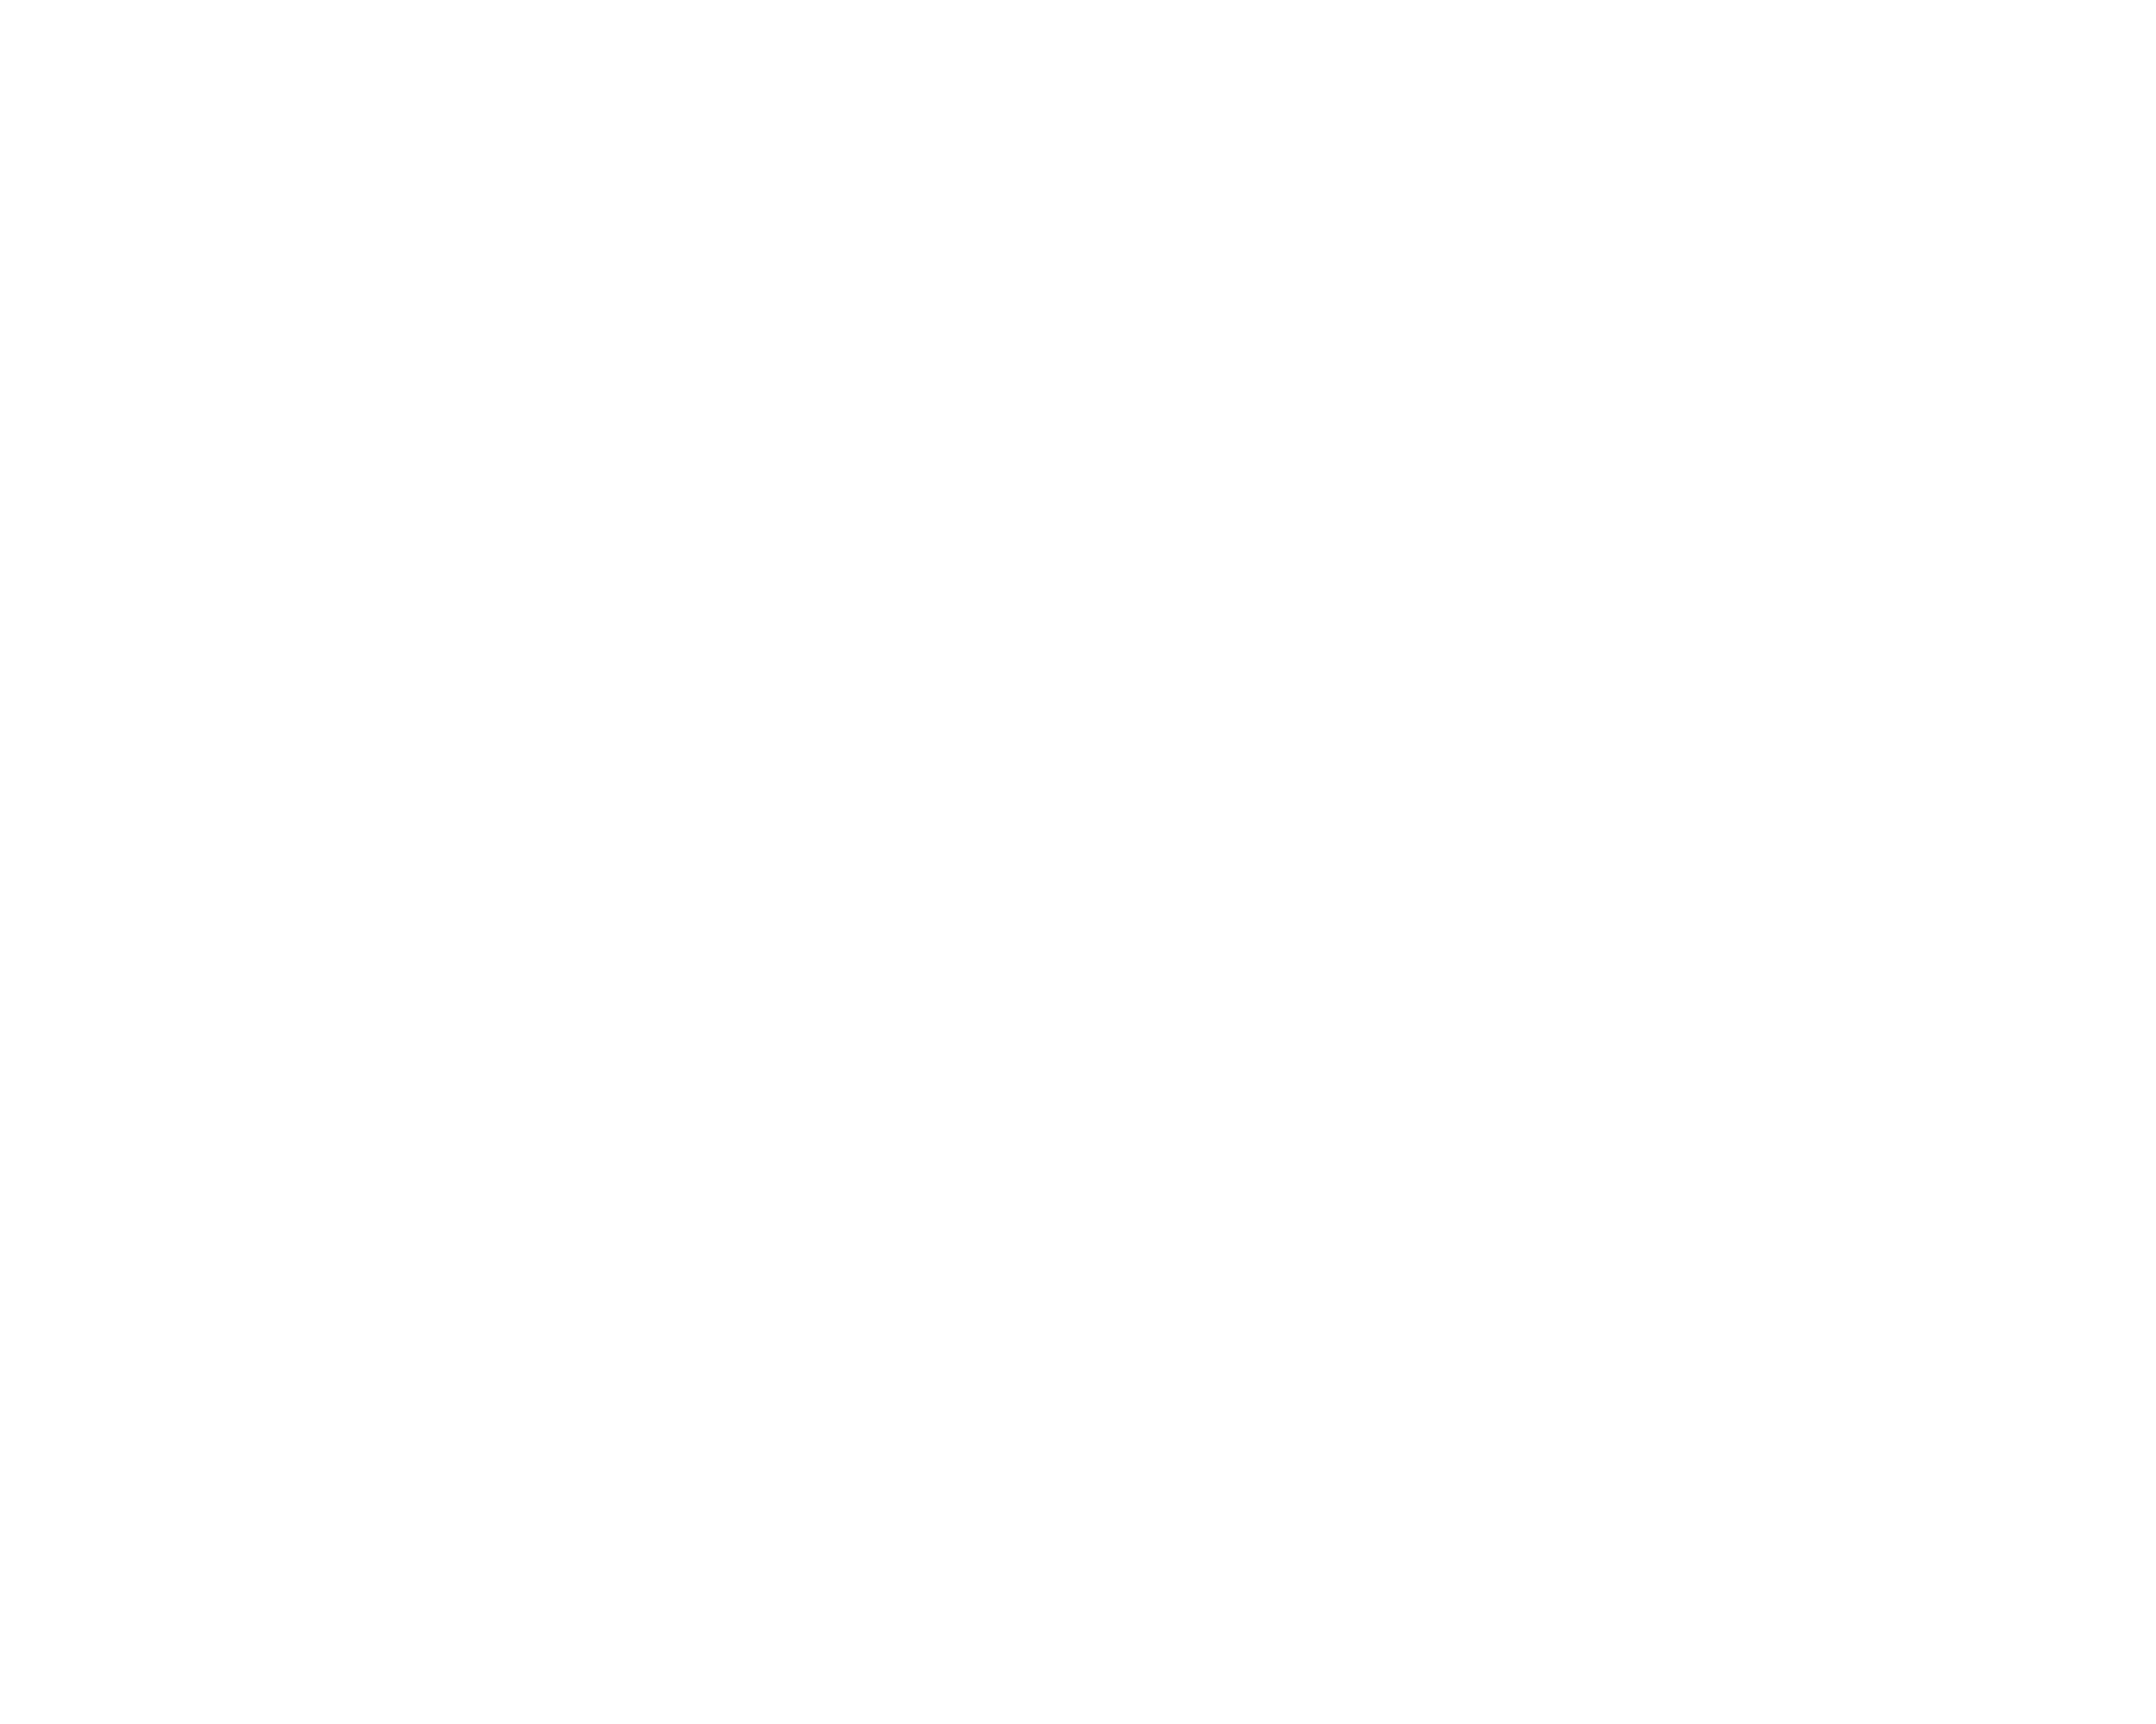 Cube4Event